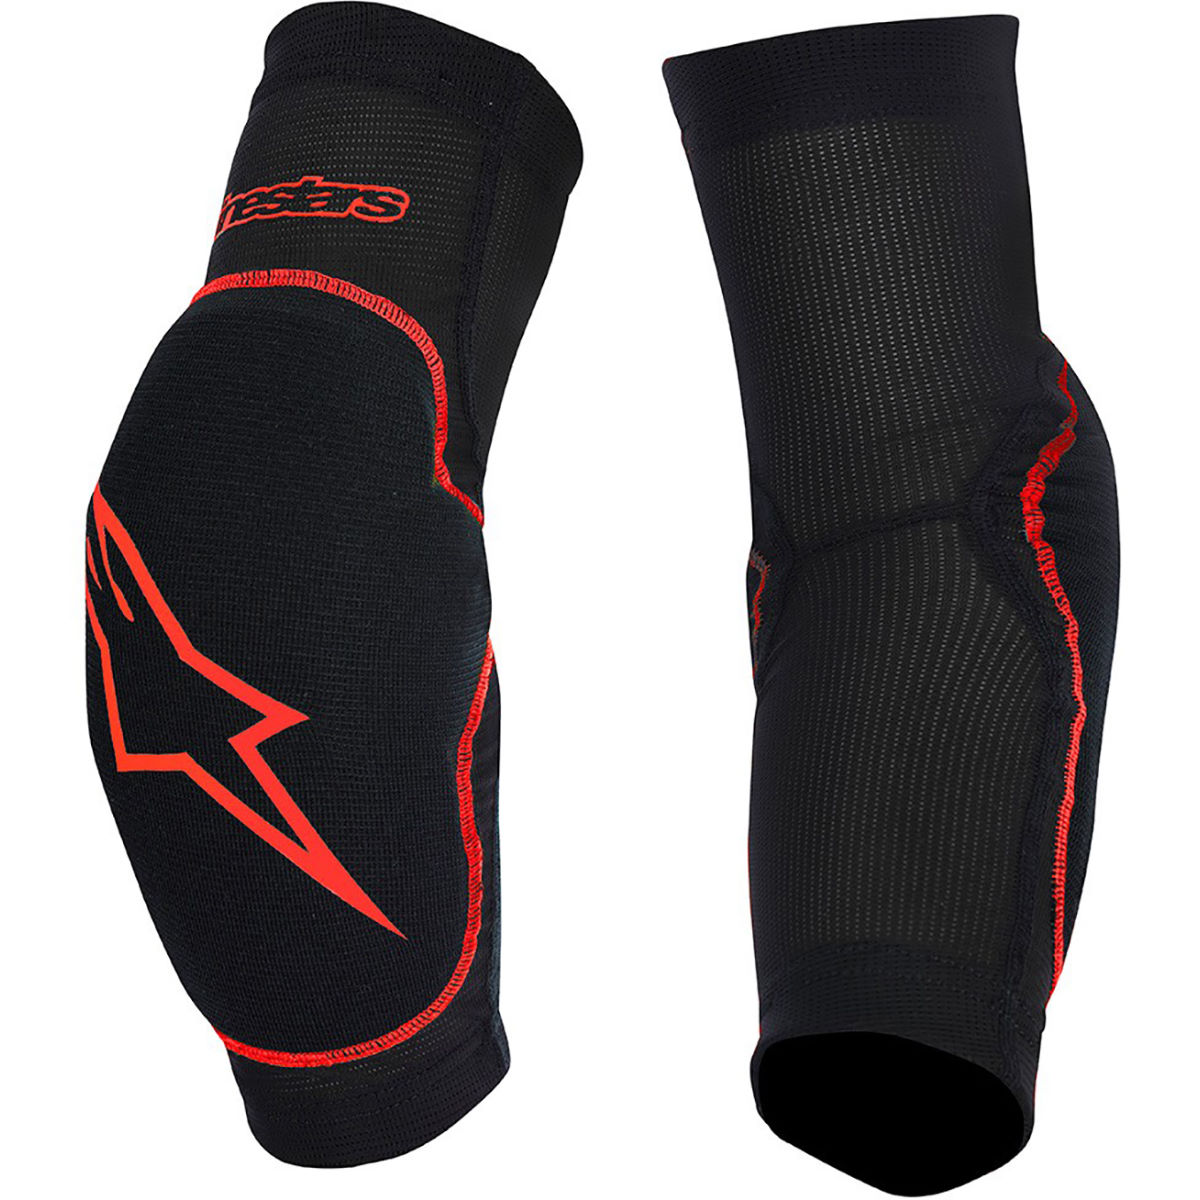 Protège-coudes Alpinestars Paragon - S Black - Red Protections